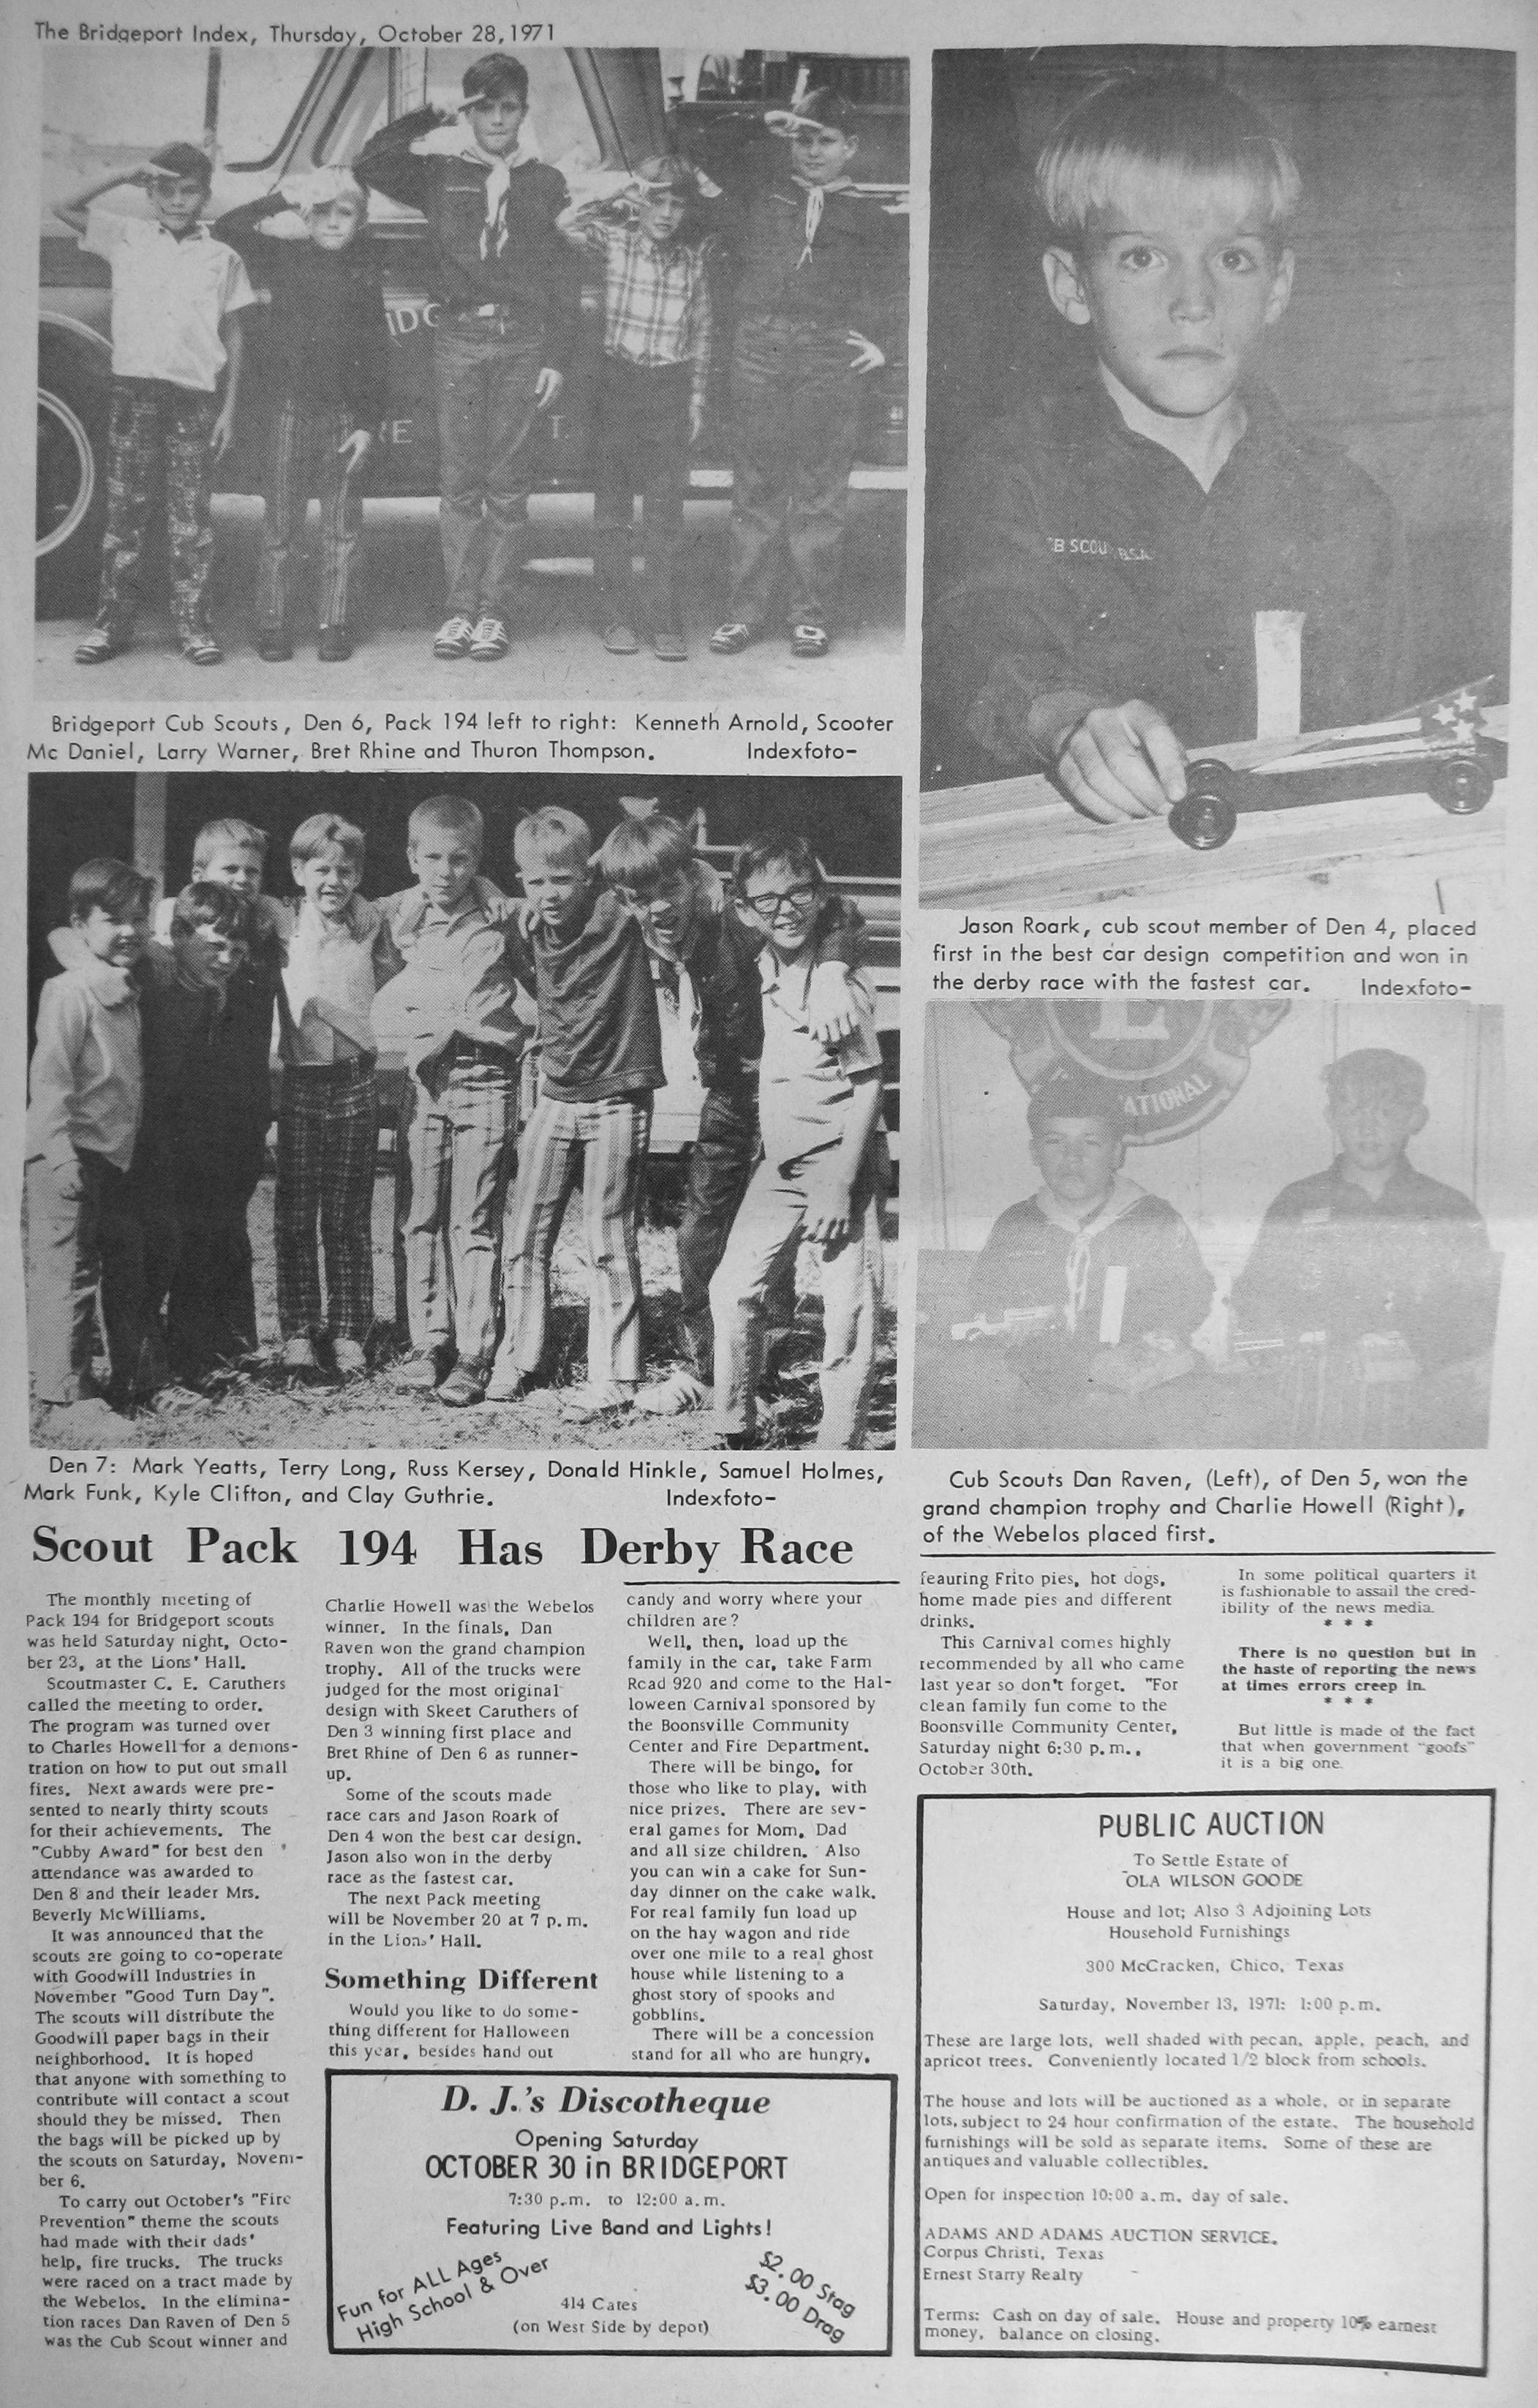 index of s m z from the 1971 bridgeport index newspaper mcdaniel scooter picture 1971 10 28 pg11